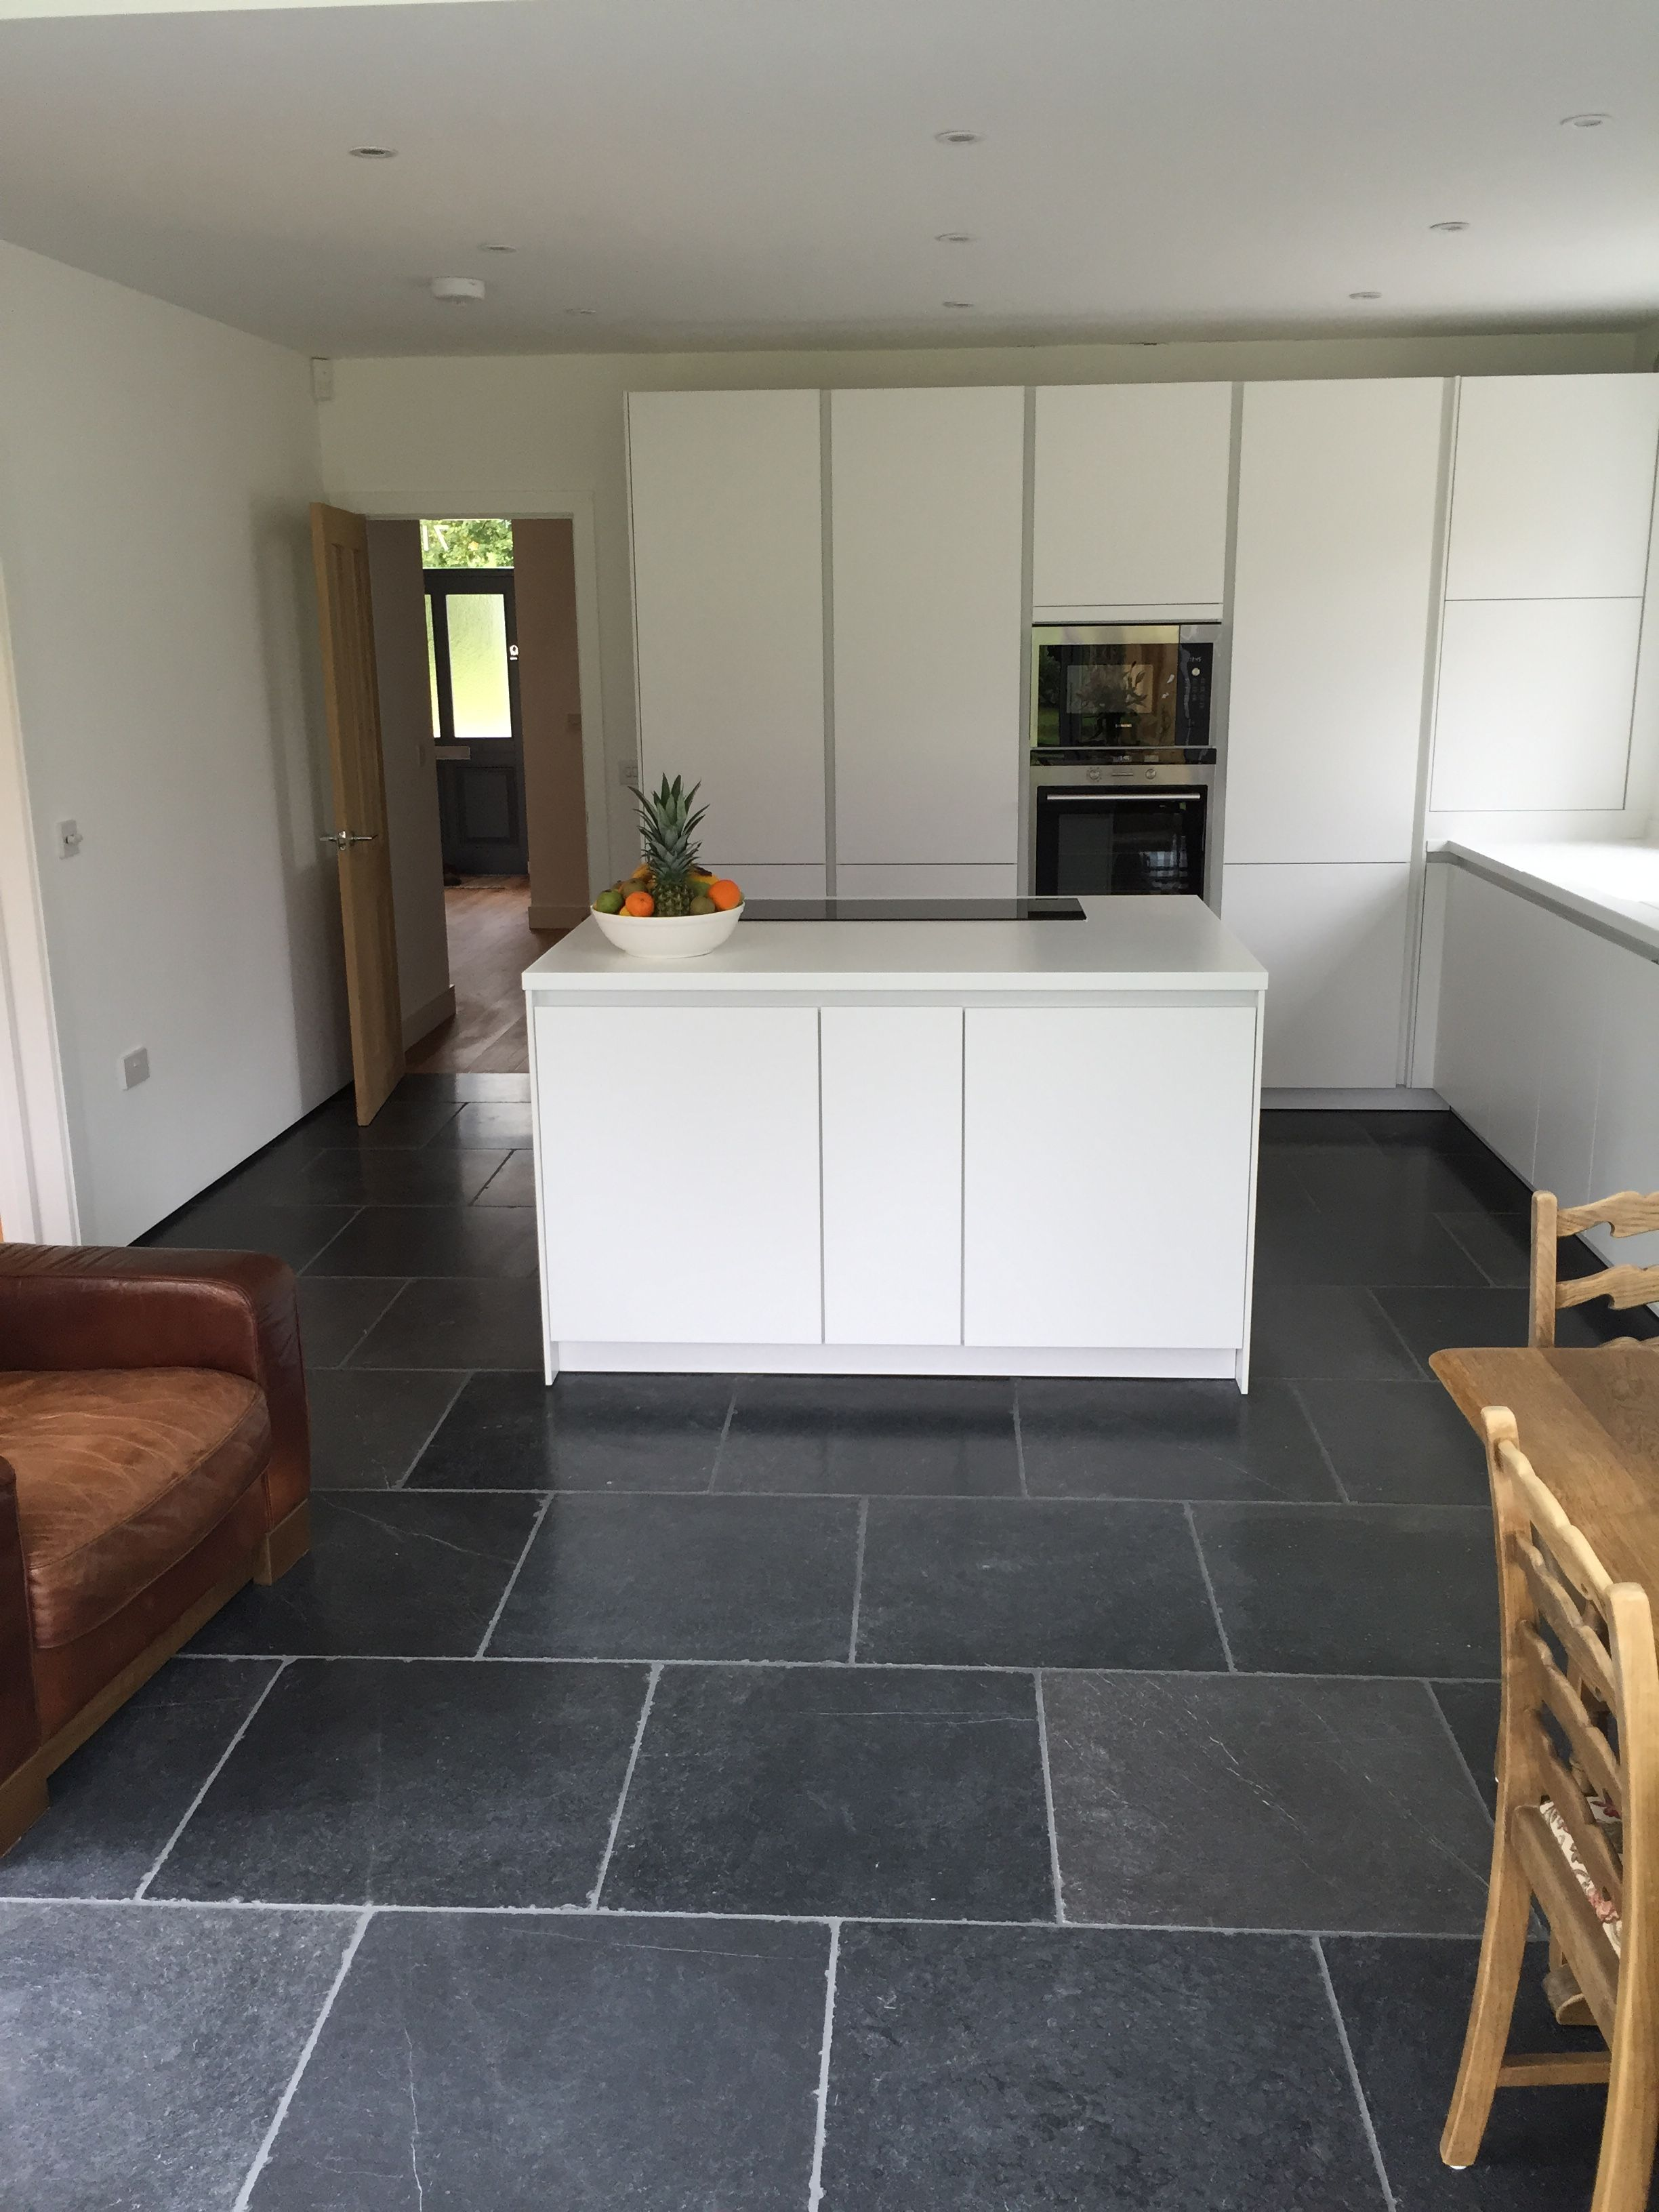 aged blue stone tiles and paving from tiles stone tiles kitchen flooring on kitchen interior tiles id=43012